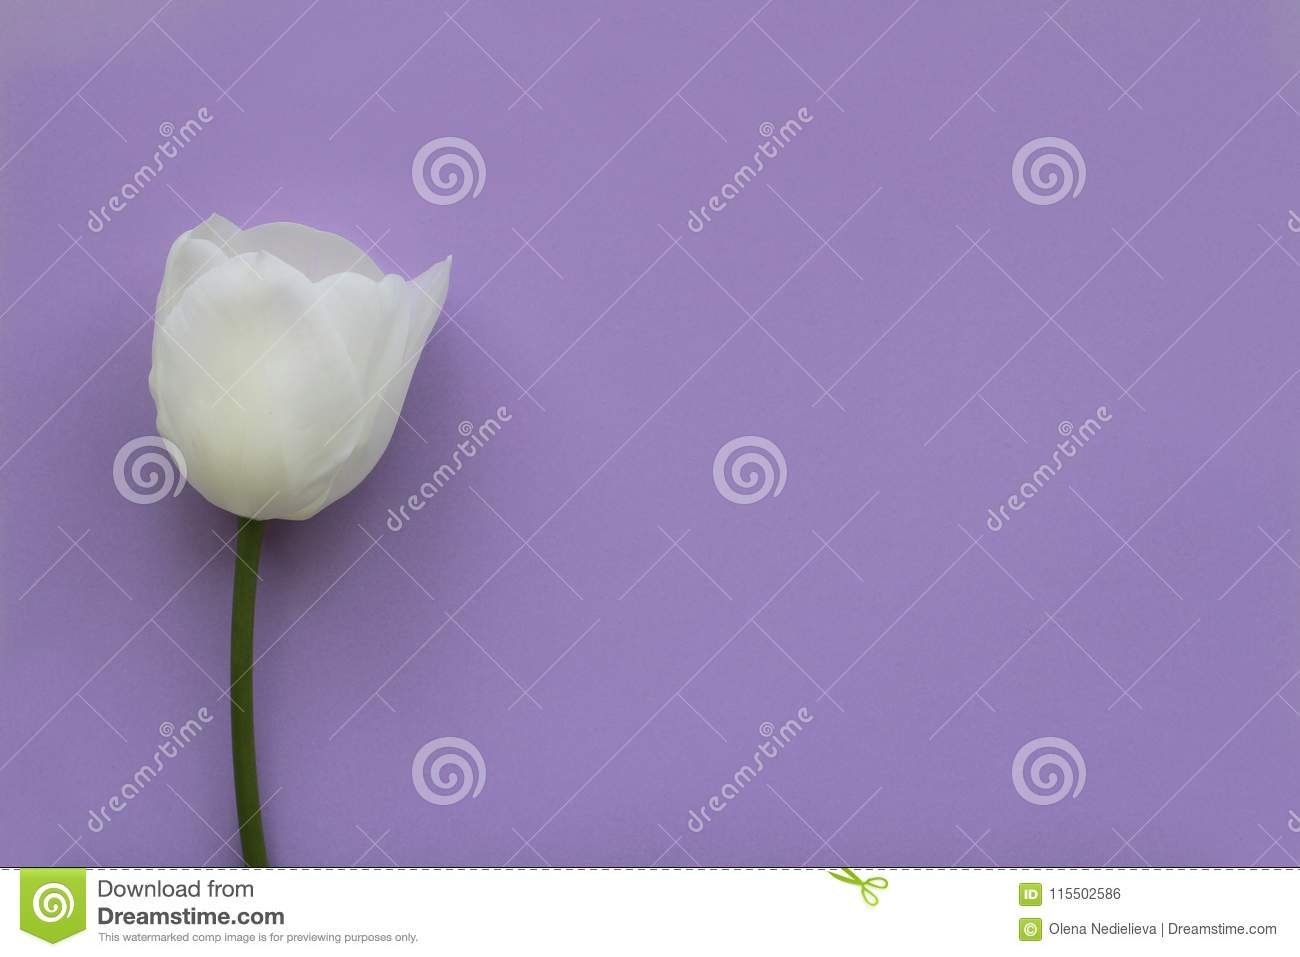 One white color tulip on violet background